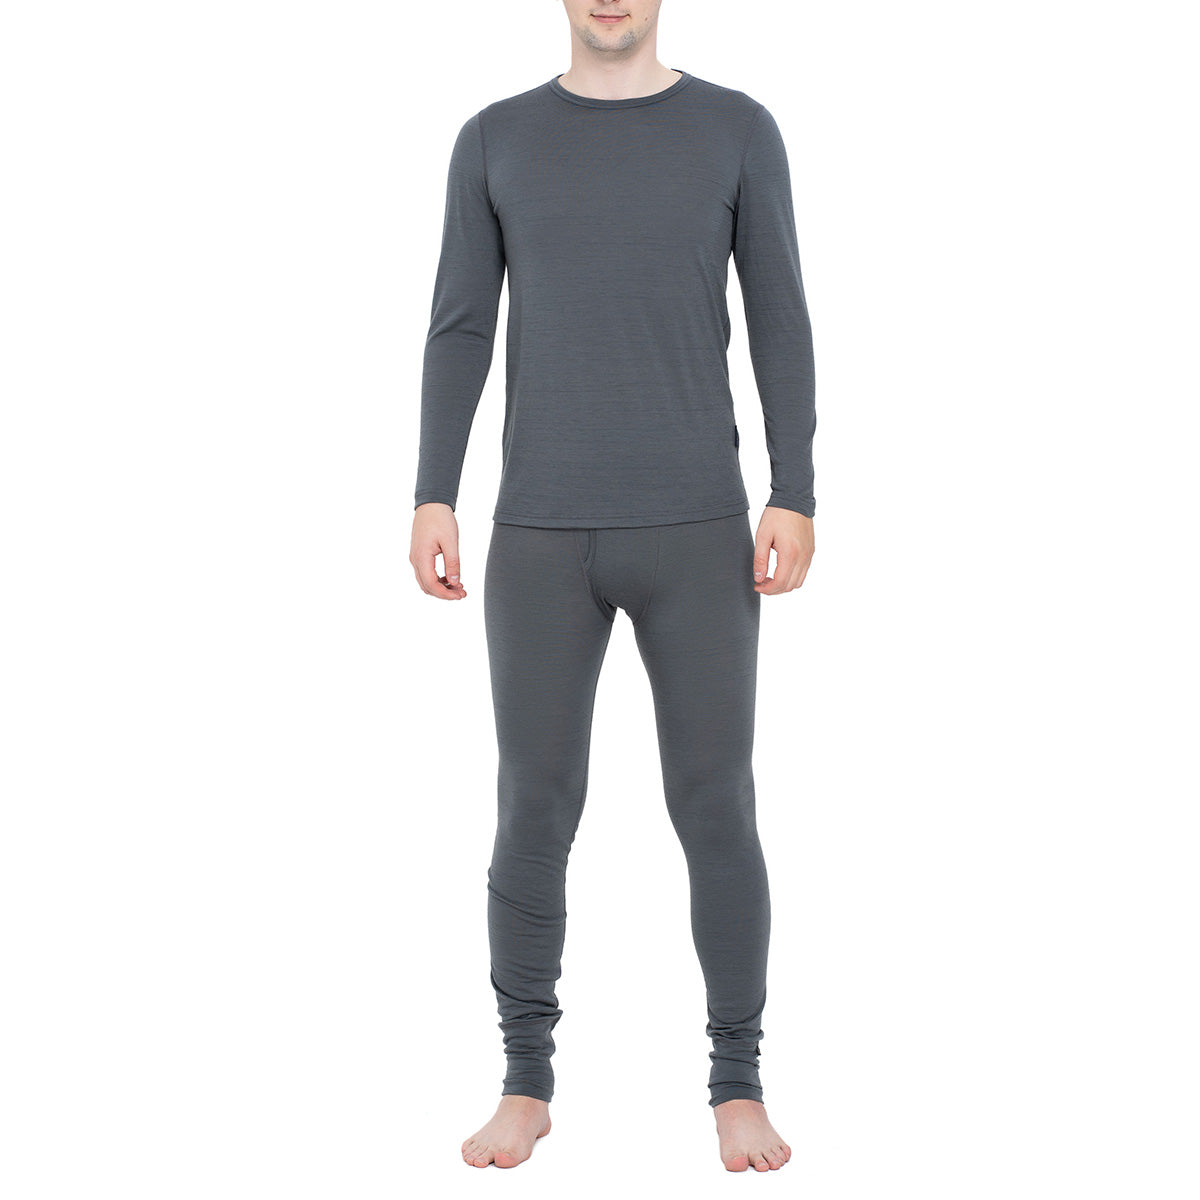 Men's Long Sleeve Set 160gsm Merino Wool Perfect Grey